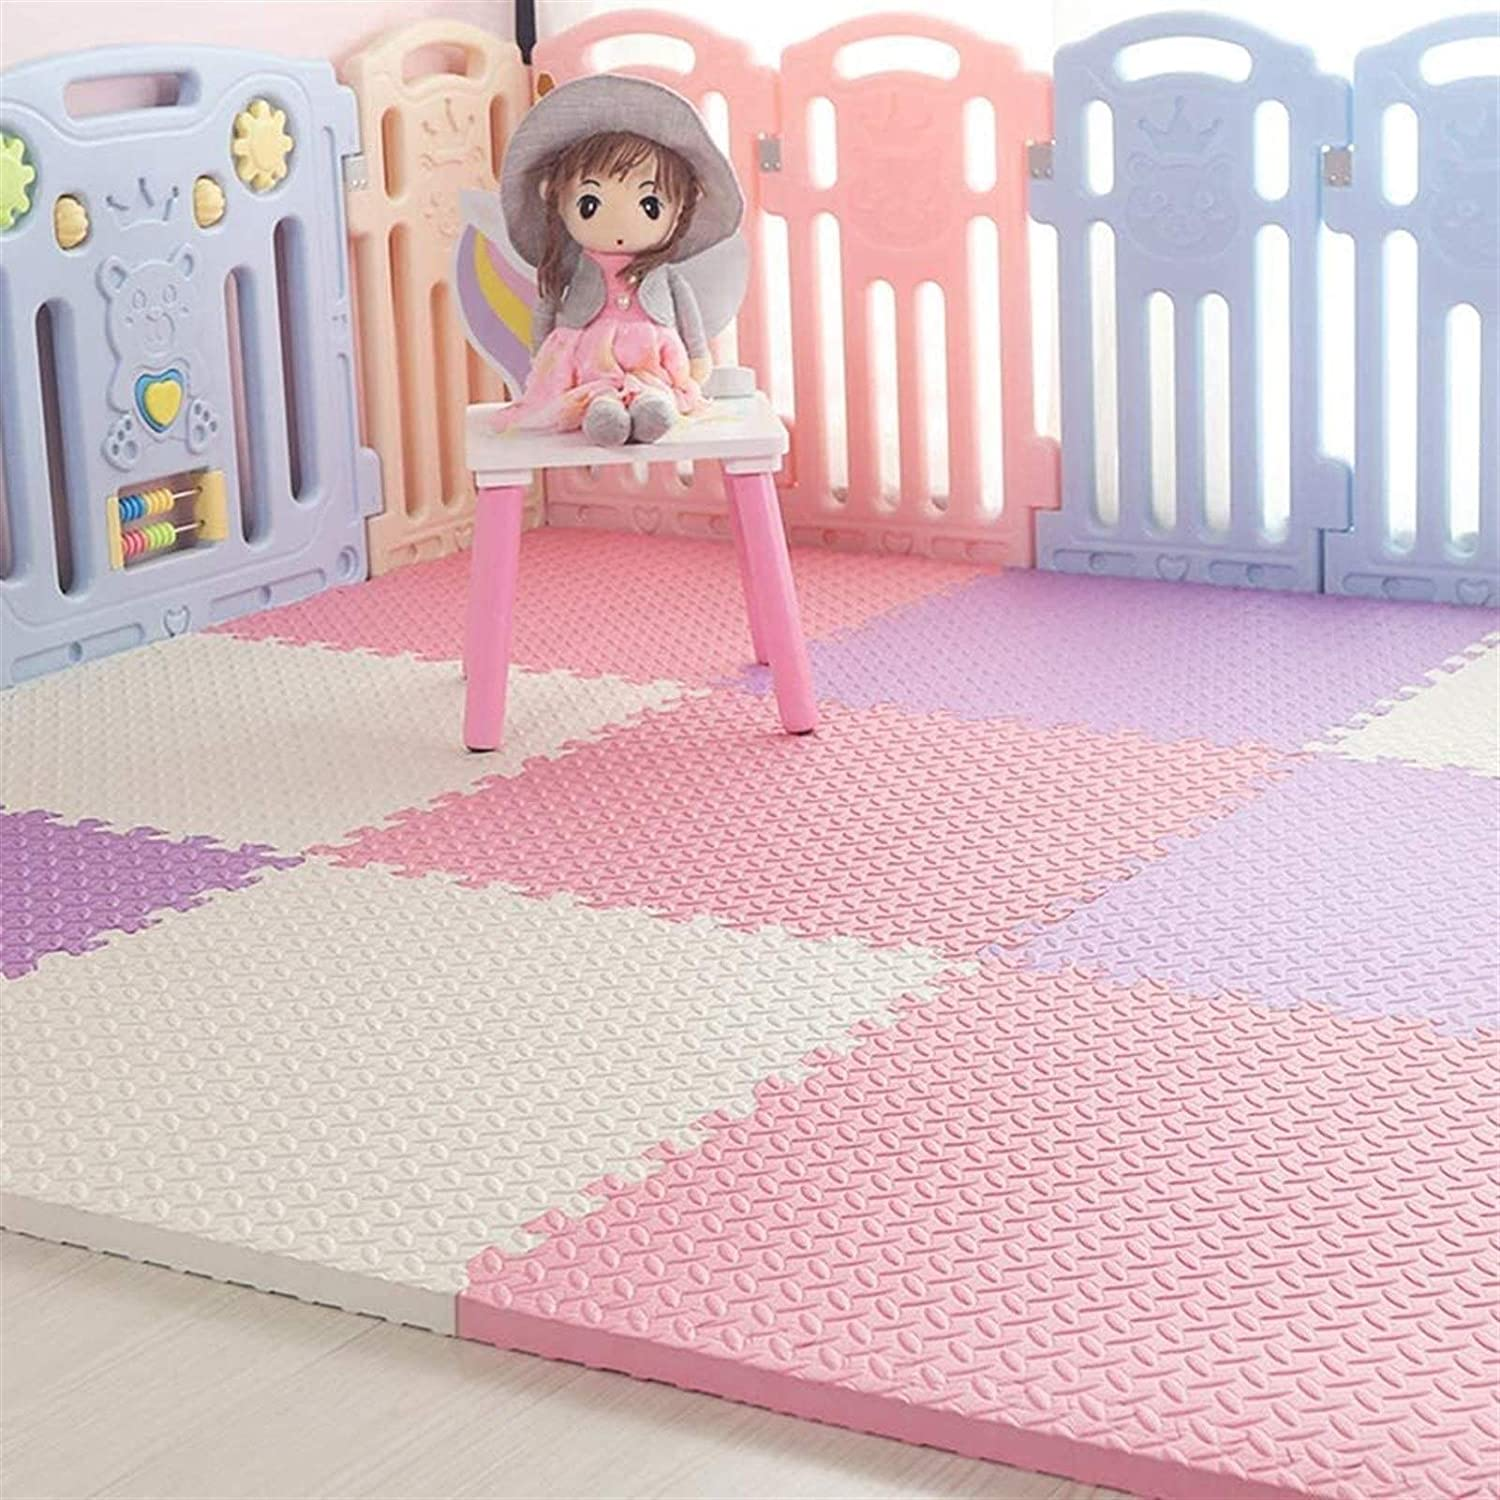 Puzzle discount Play Mats The Sports Seasonal Wrap Introduction Noise-R Waterproof Is Pad And